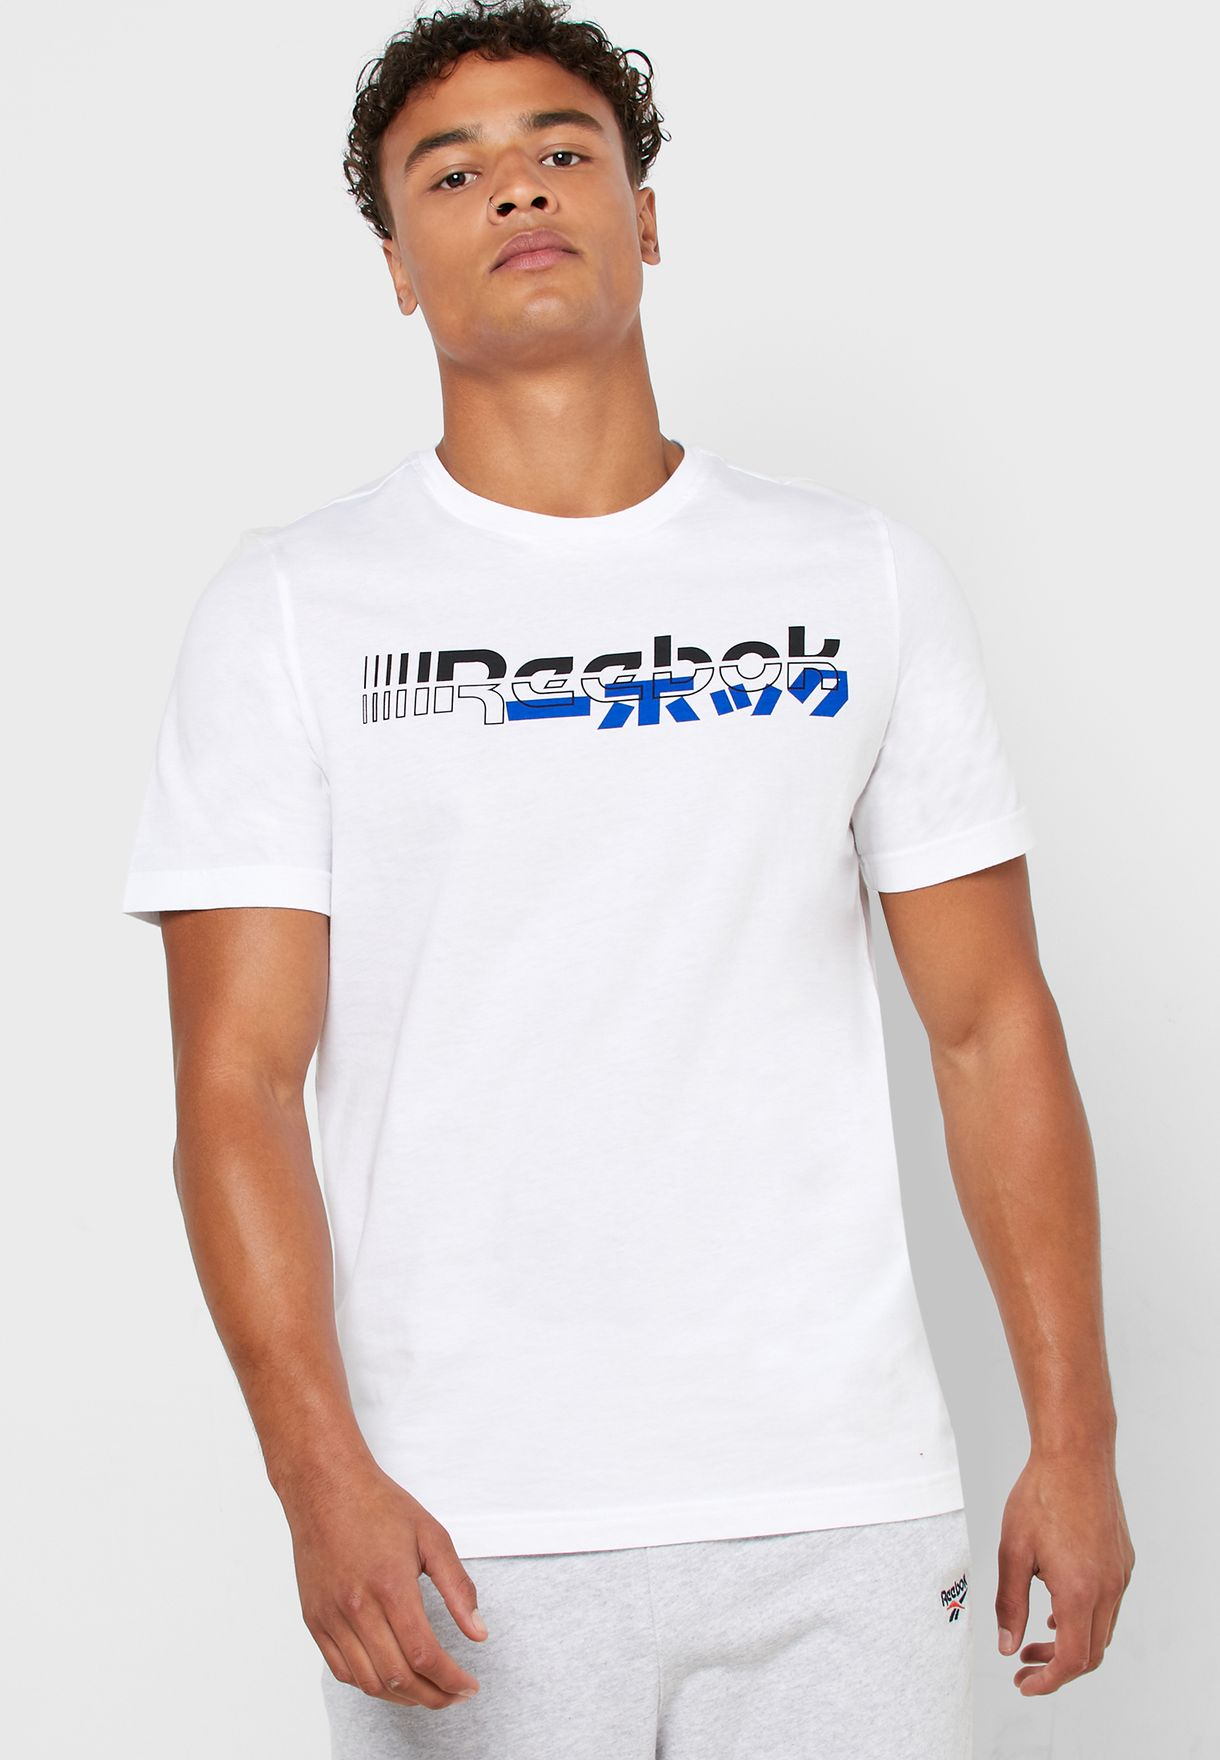 Meet You There T-Shirt